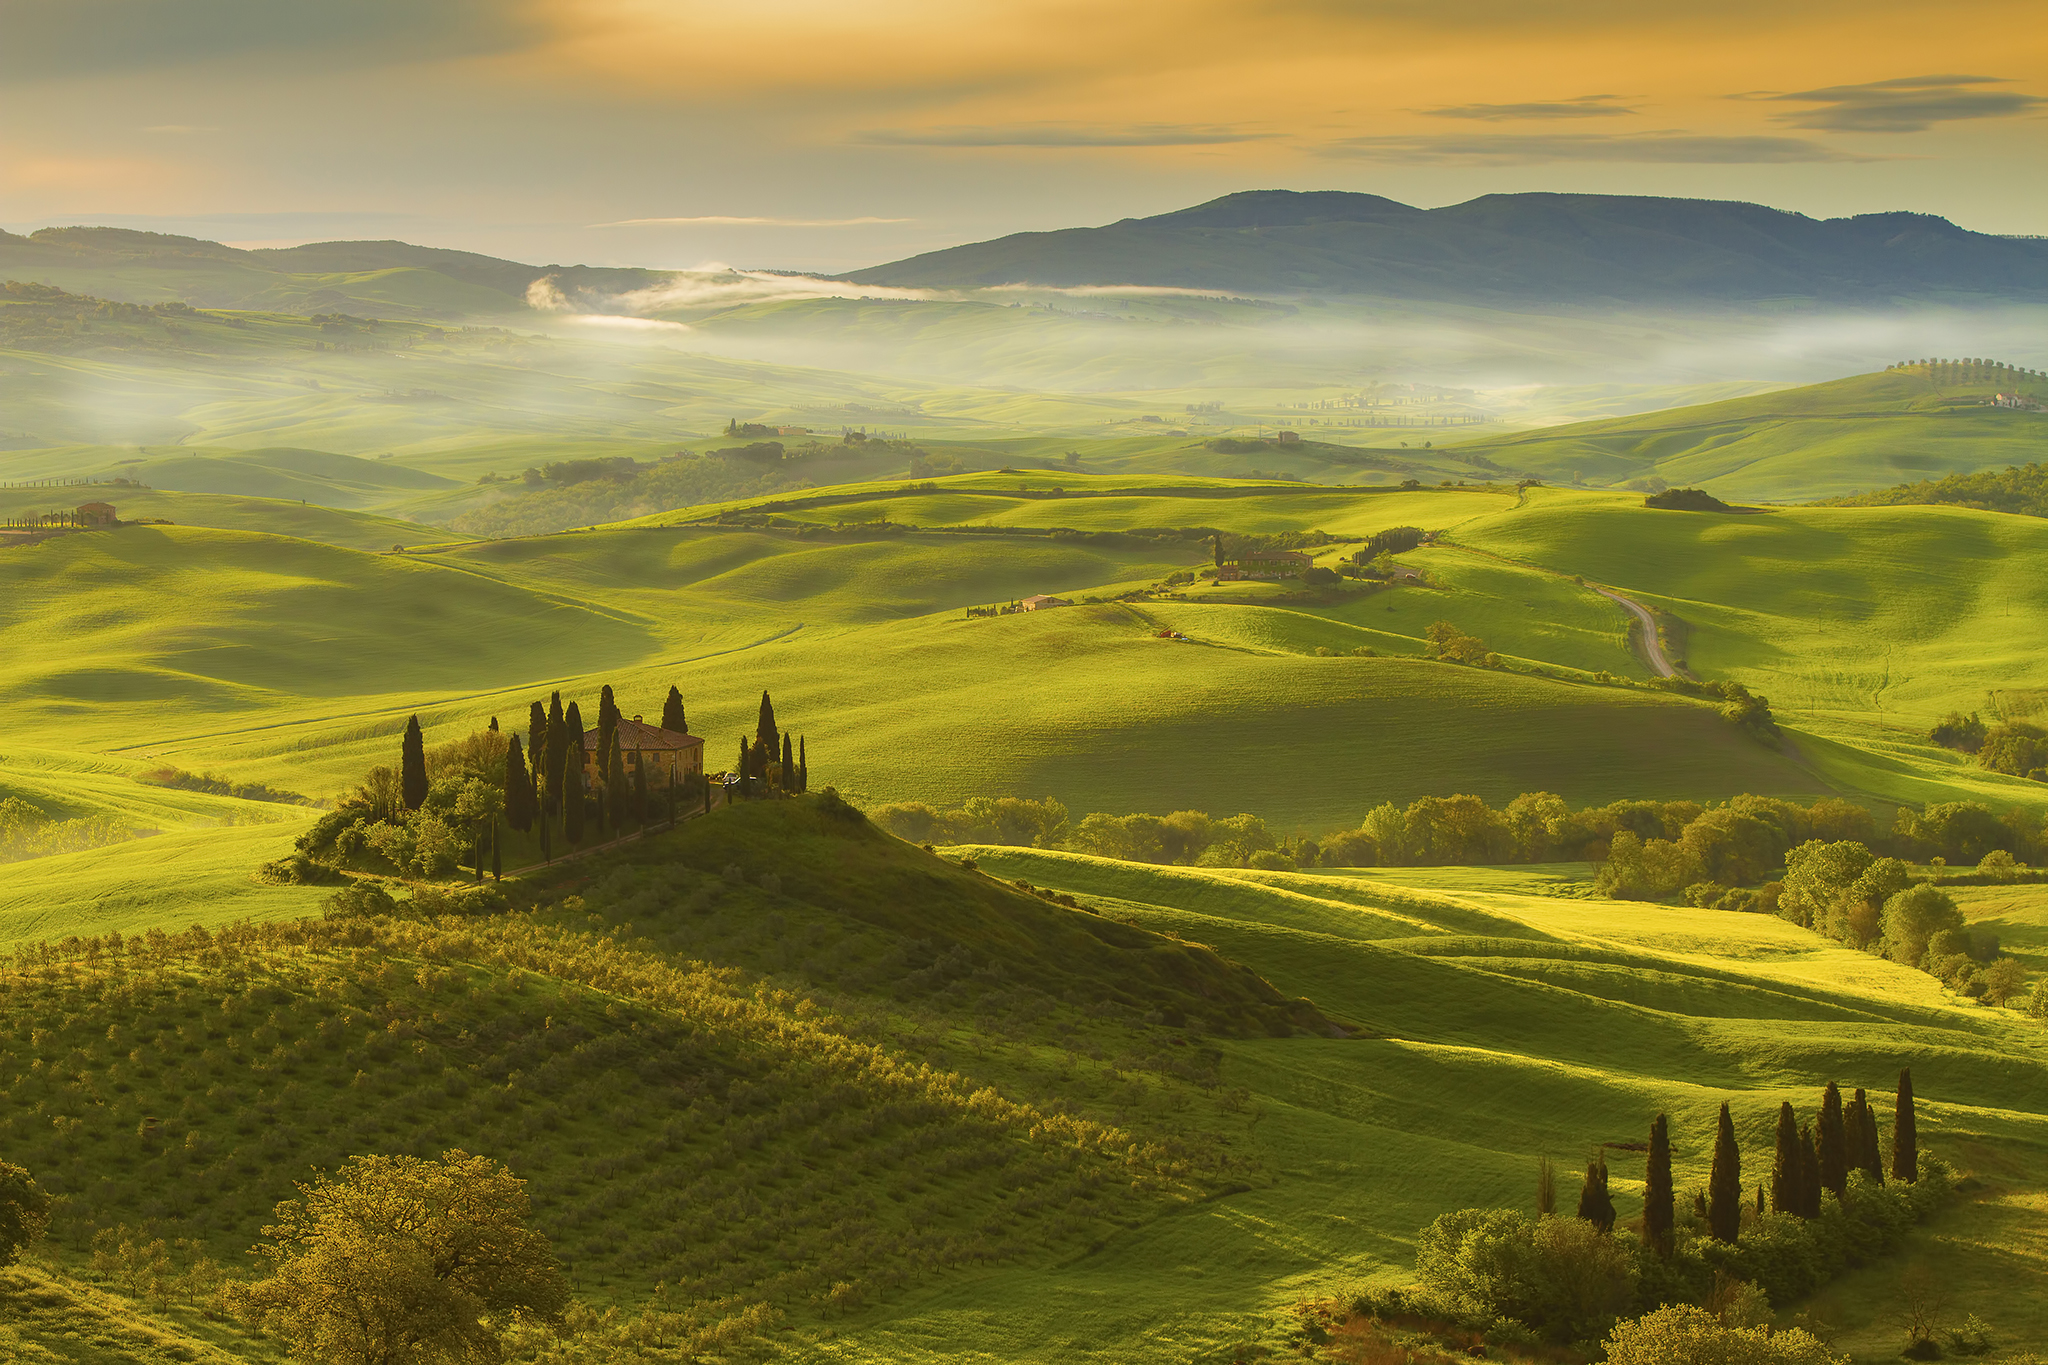 Podere Belvedere in the Val D'orcia Tuscany, Italy